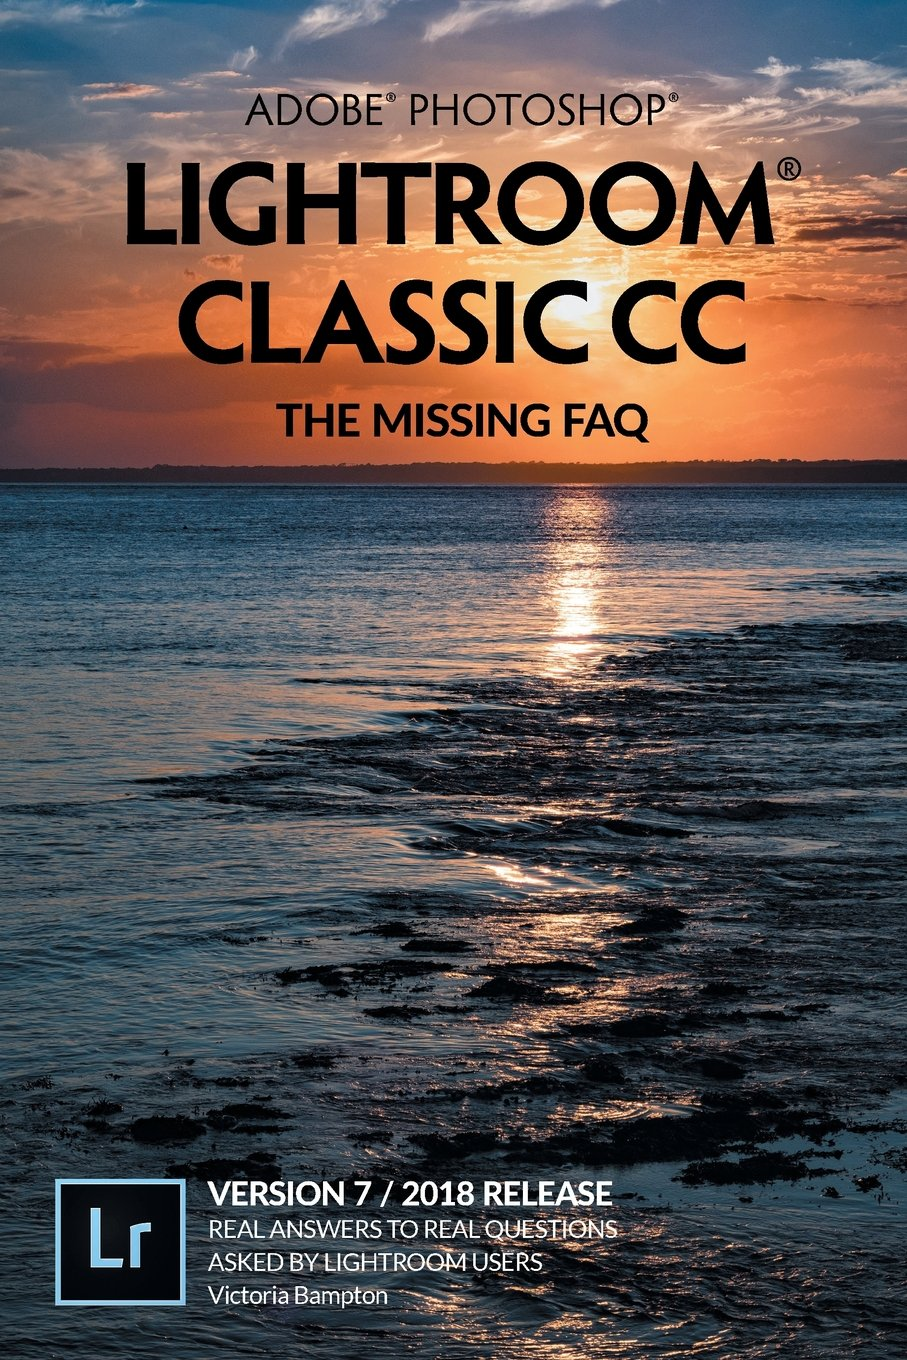 Adobe photoshop lightroom classic cc the missing faq version 7 adobe photoshop lightroom classic cc the missing faq version 72018 release real answers to real questions asked by lightroom users victoria bampton fandeluxe Image collections